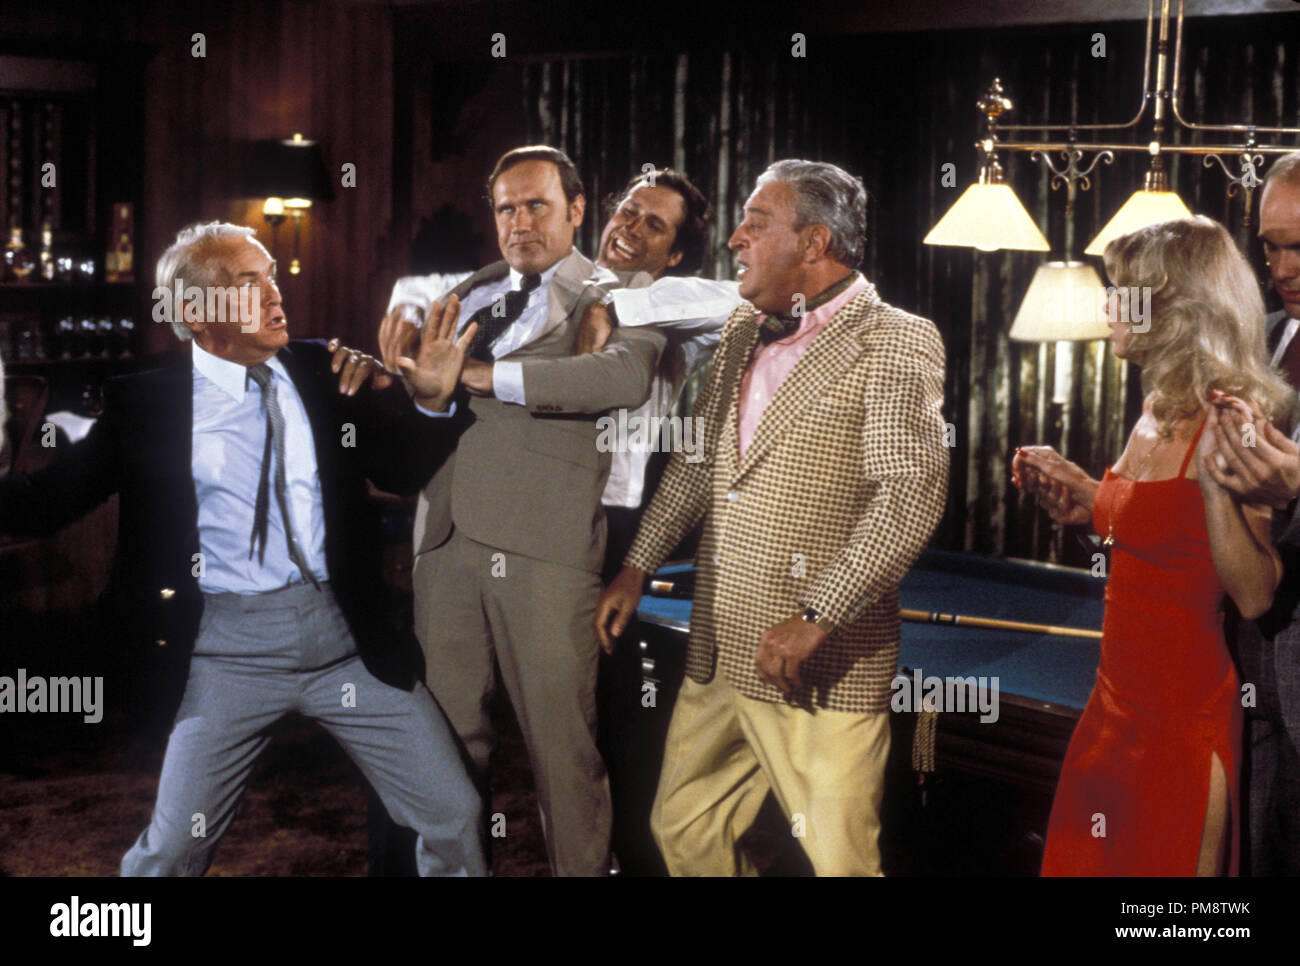 Studio Publicity Still from 'Caddyshack' Ted Knight, Chevy Chase, Rodney Dangerfield © 1980 Orion  All Rights Reserved   File Reference # 31715287THA  For Editorial Use Only - Stock Image